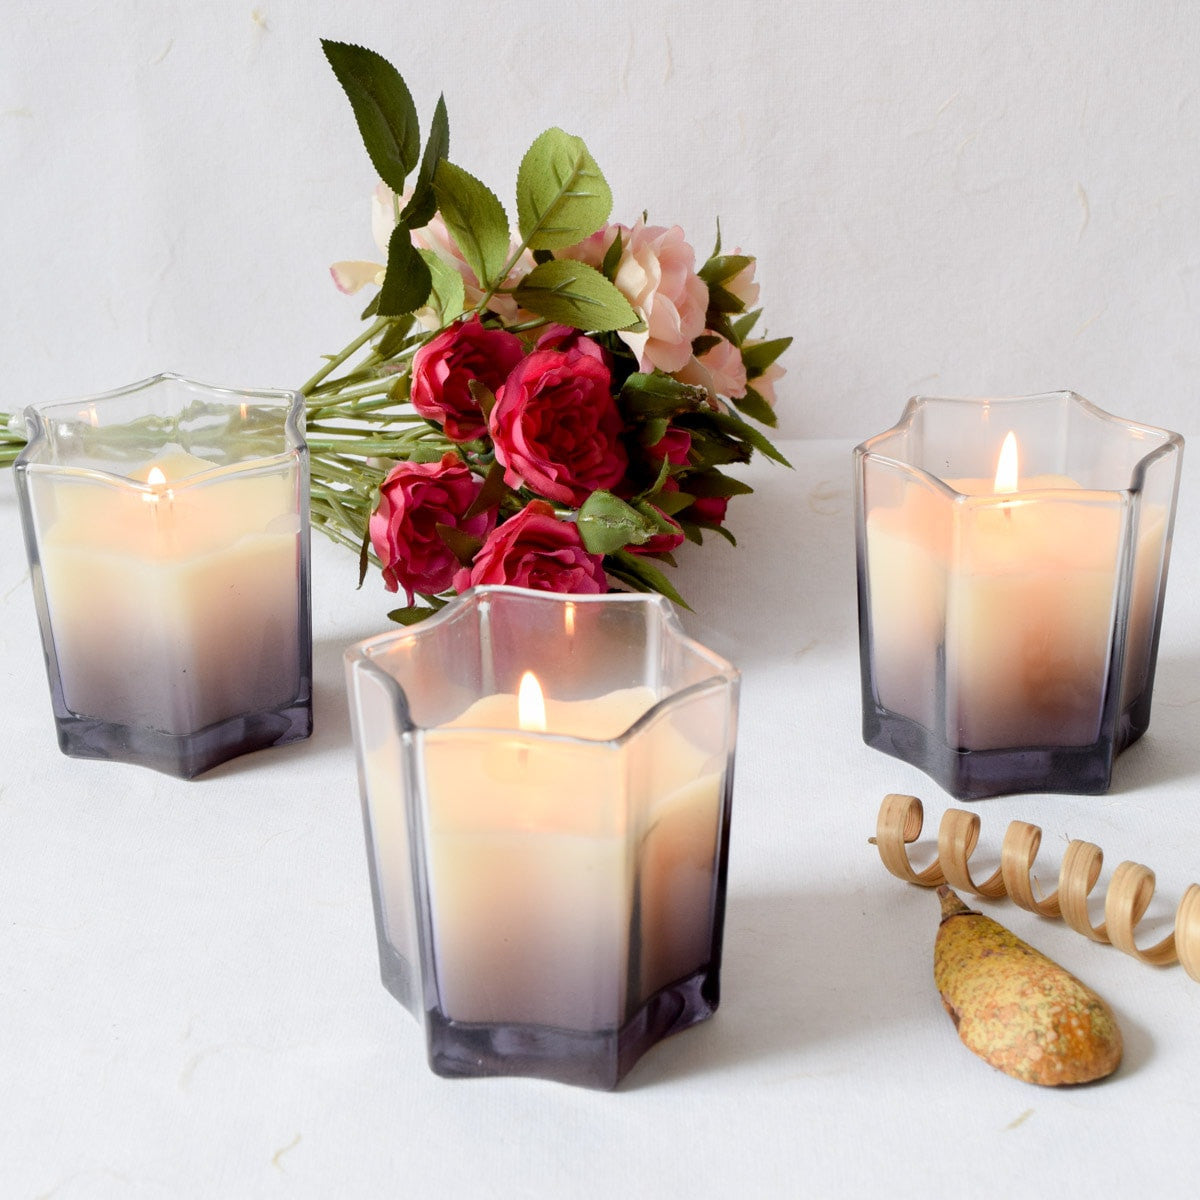 Starburst Smoky Glass Candles (Set of 3) - Home Artisan_1